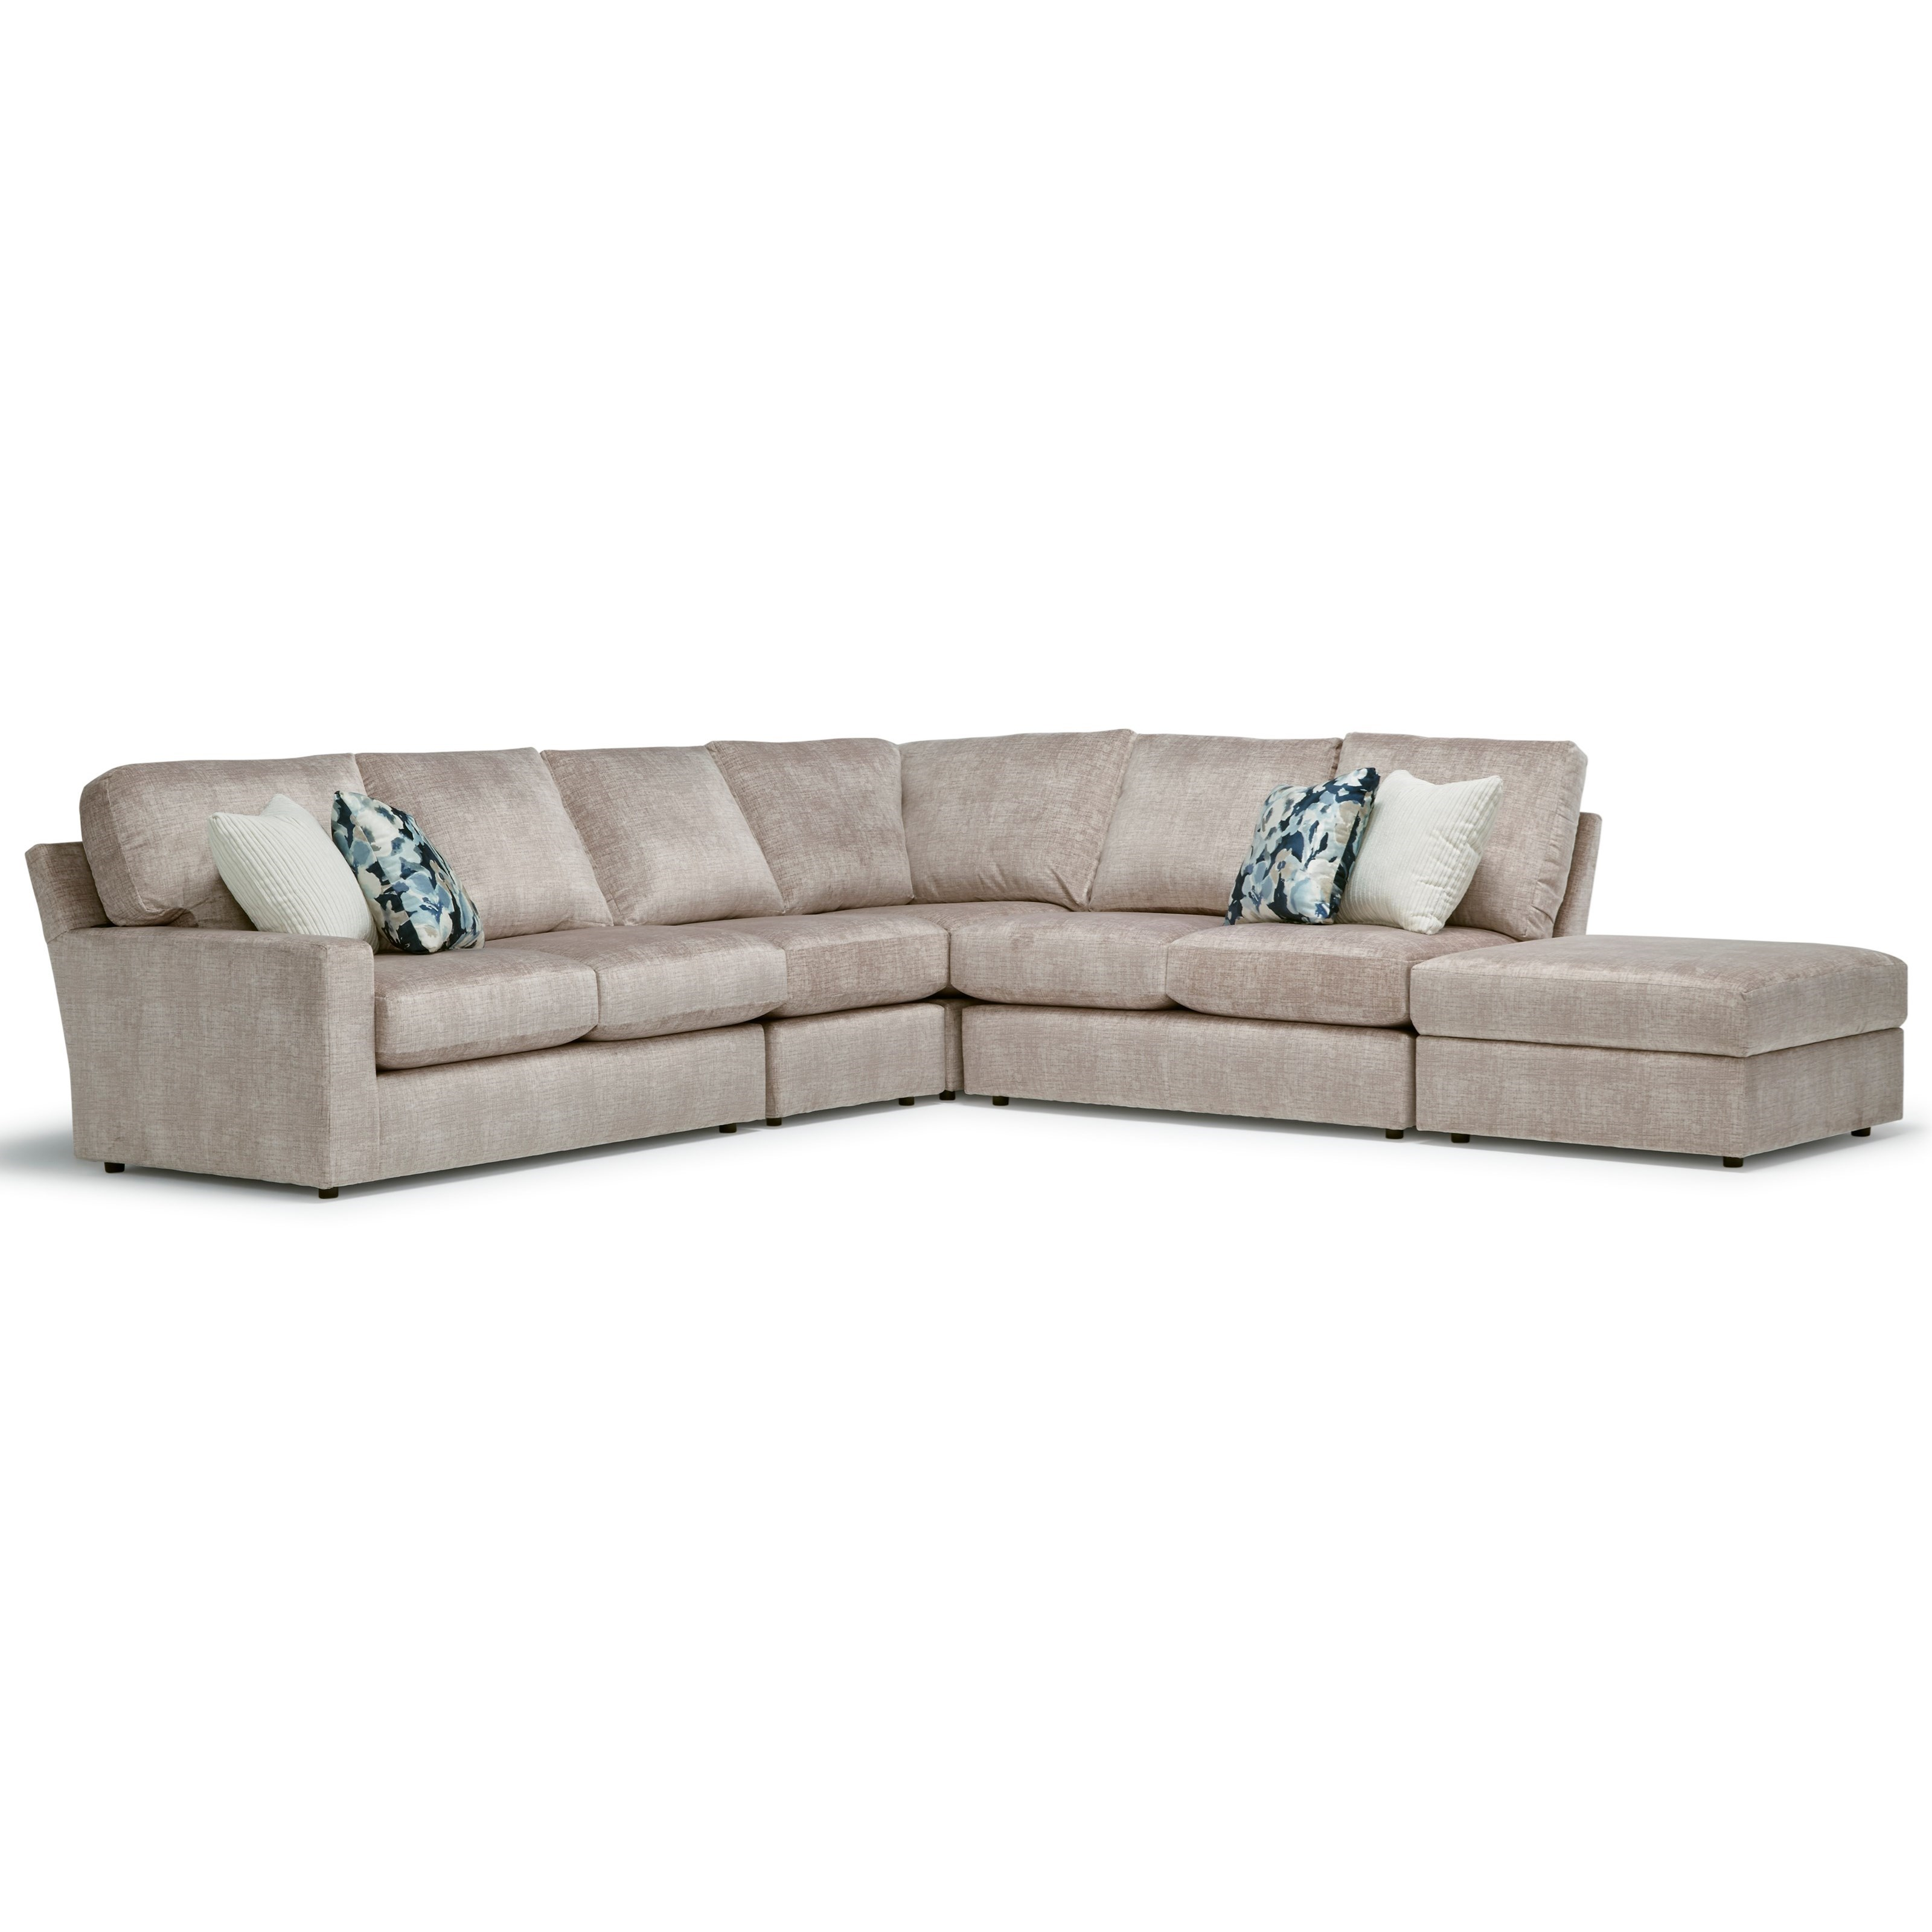 Dovely 5-Seat Sectional Sofa w/ RAF Ottoman Piece by Best Home Furnishings at Baer's Furniture